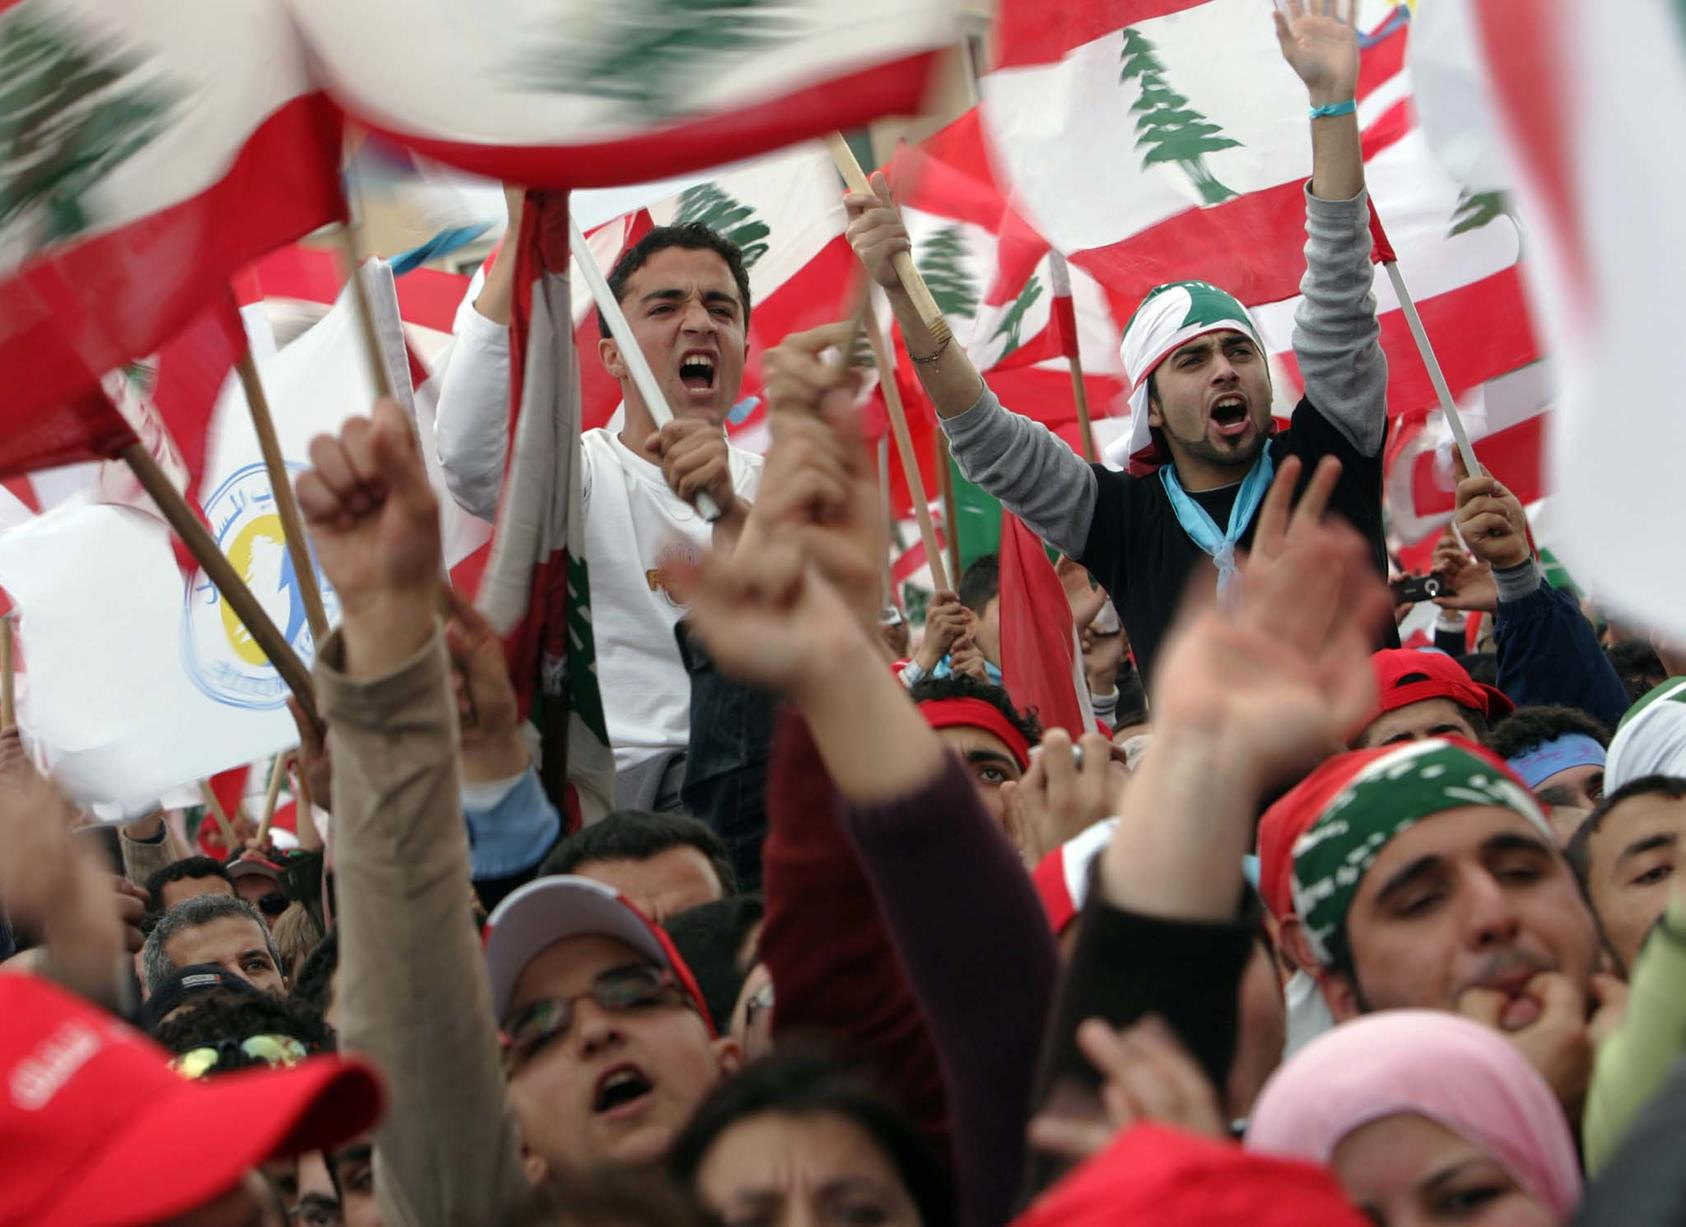 Demonstrators wave the flag of Lebanon during a rally in Beirut. (Shawn Baldwin/The New York Times)